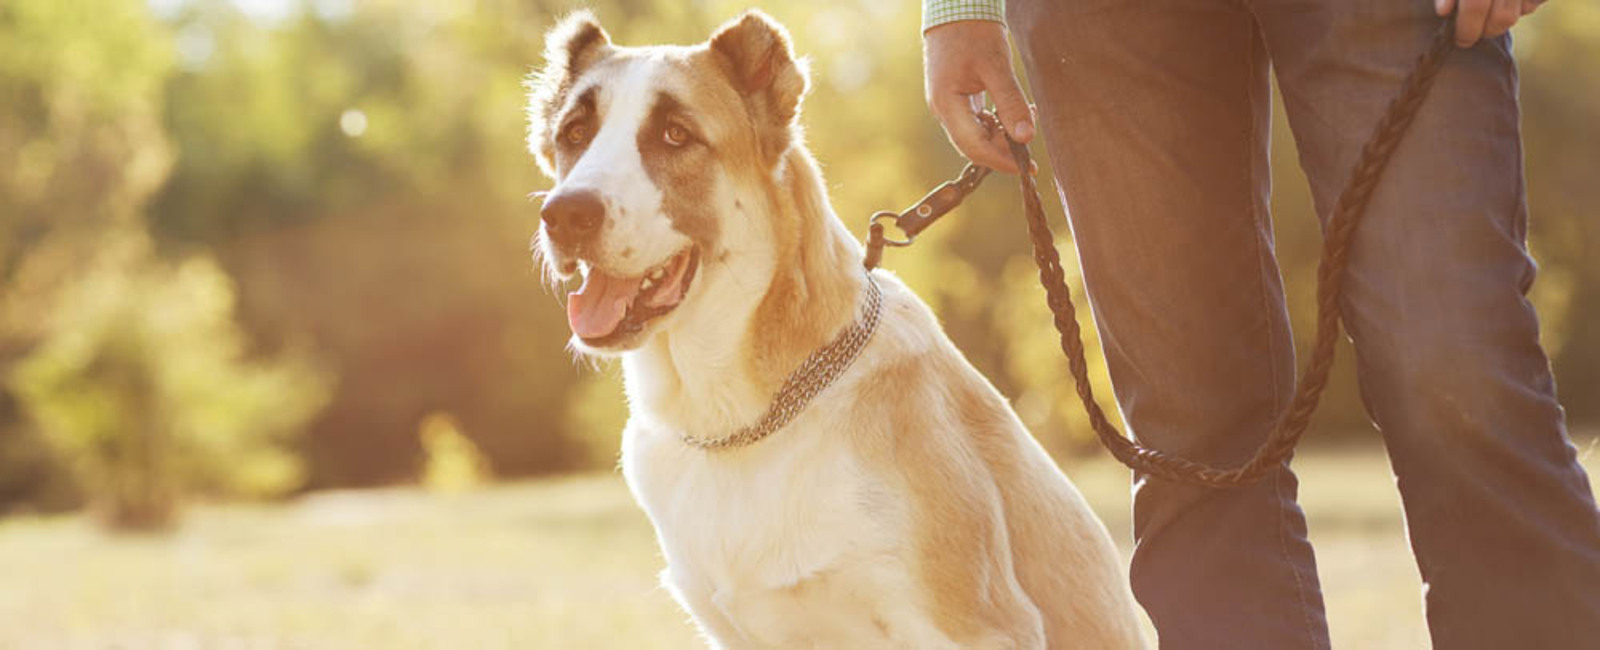 Midland Animal Hospital | Midland Animal Clinic